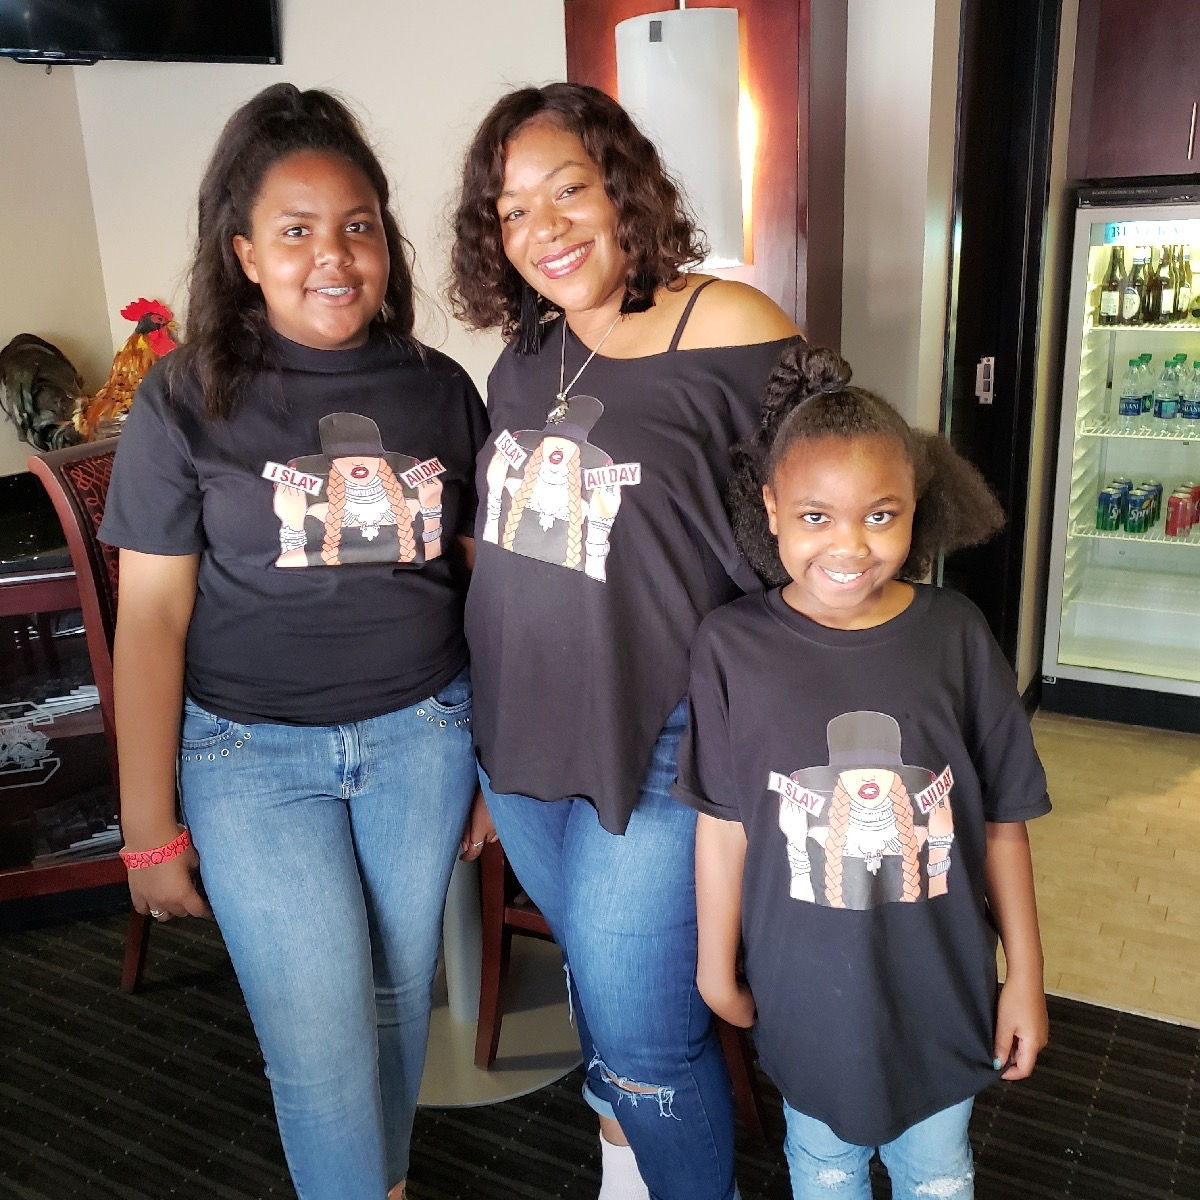 me and my daughters at the Beyonce concert in Columbia SC August 2018